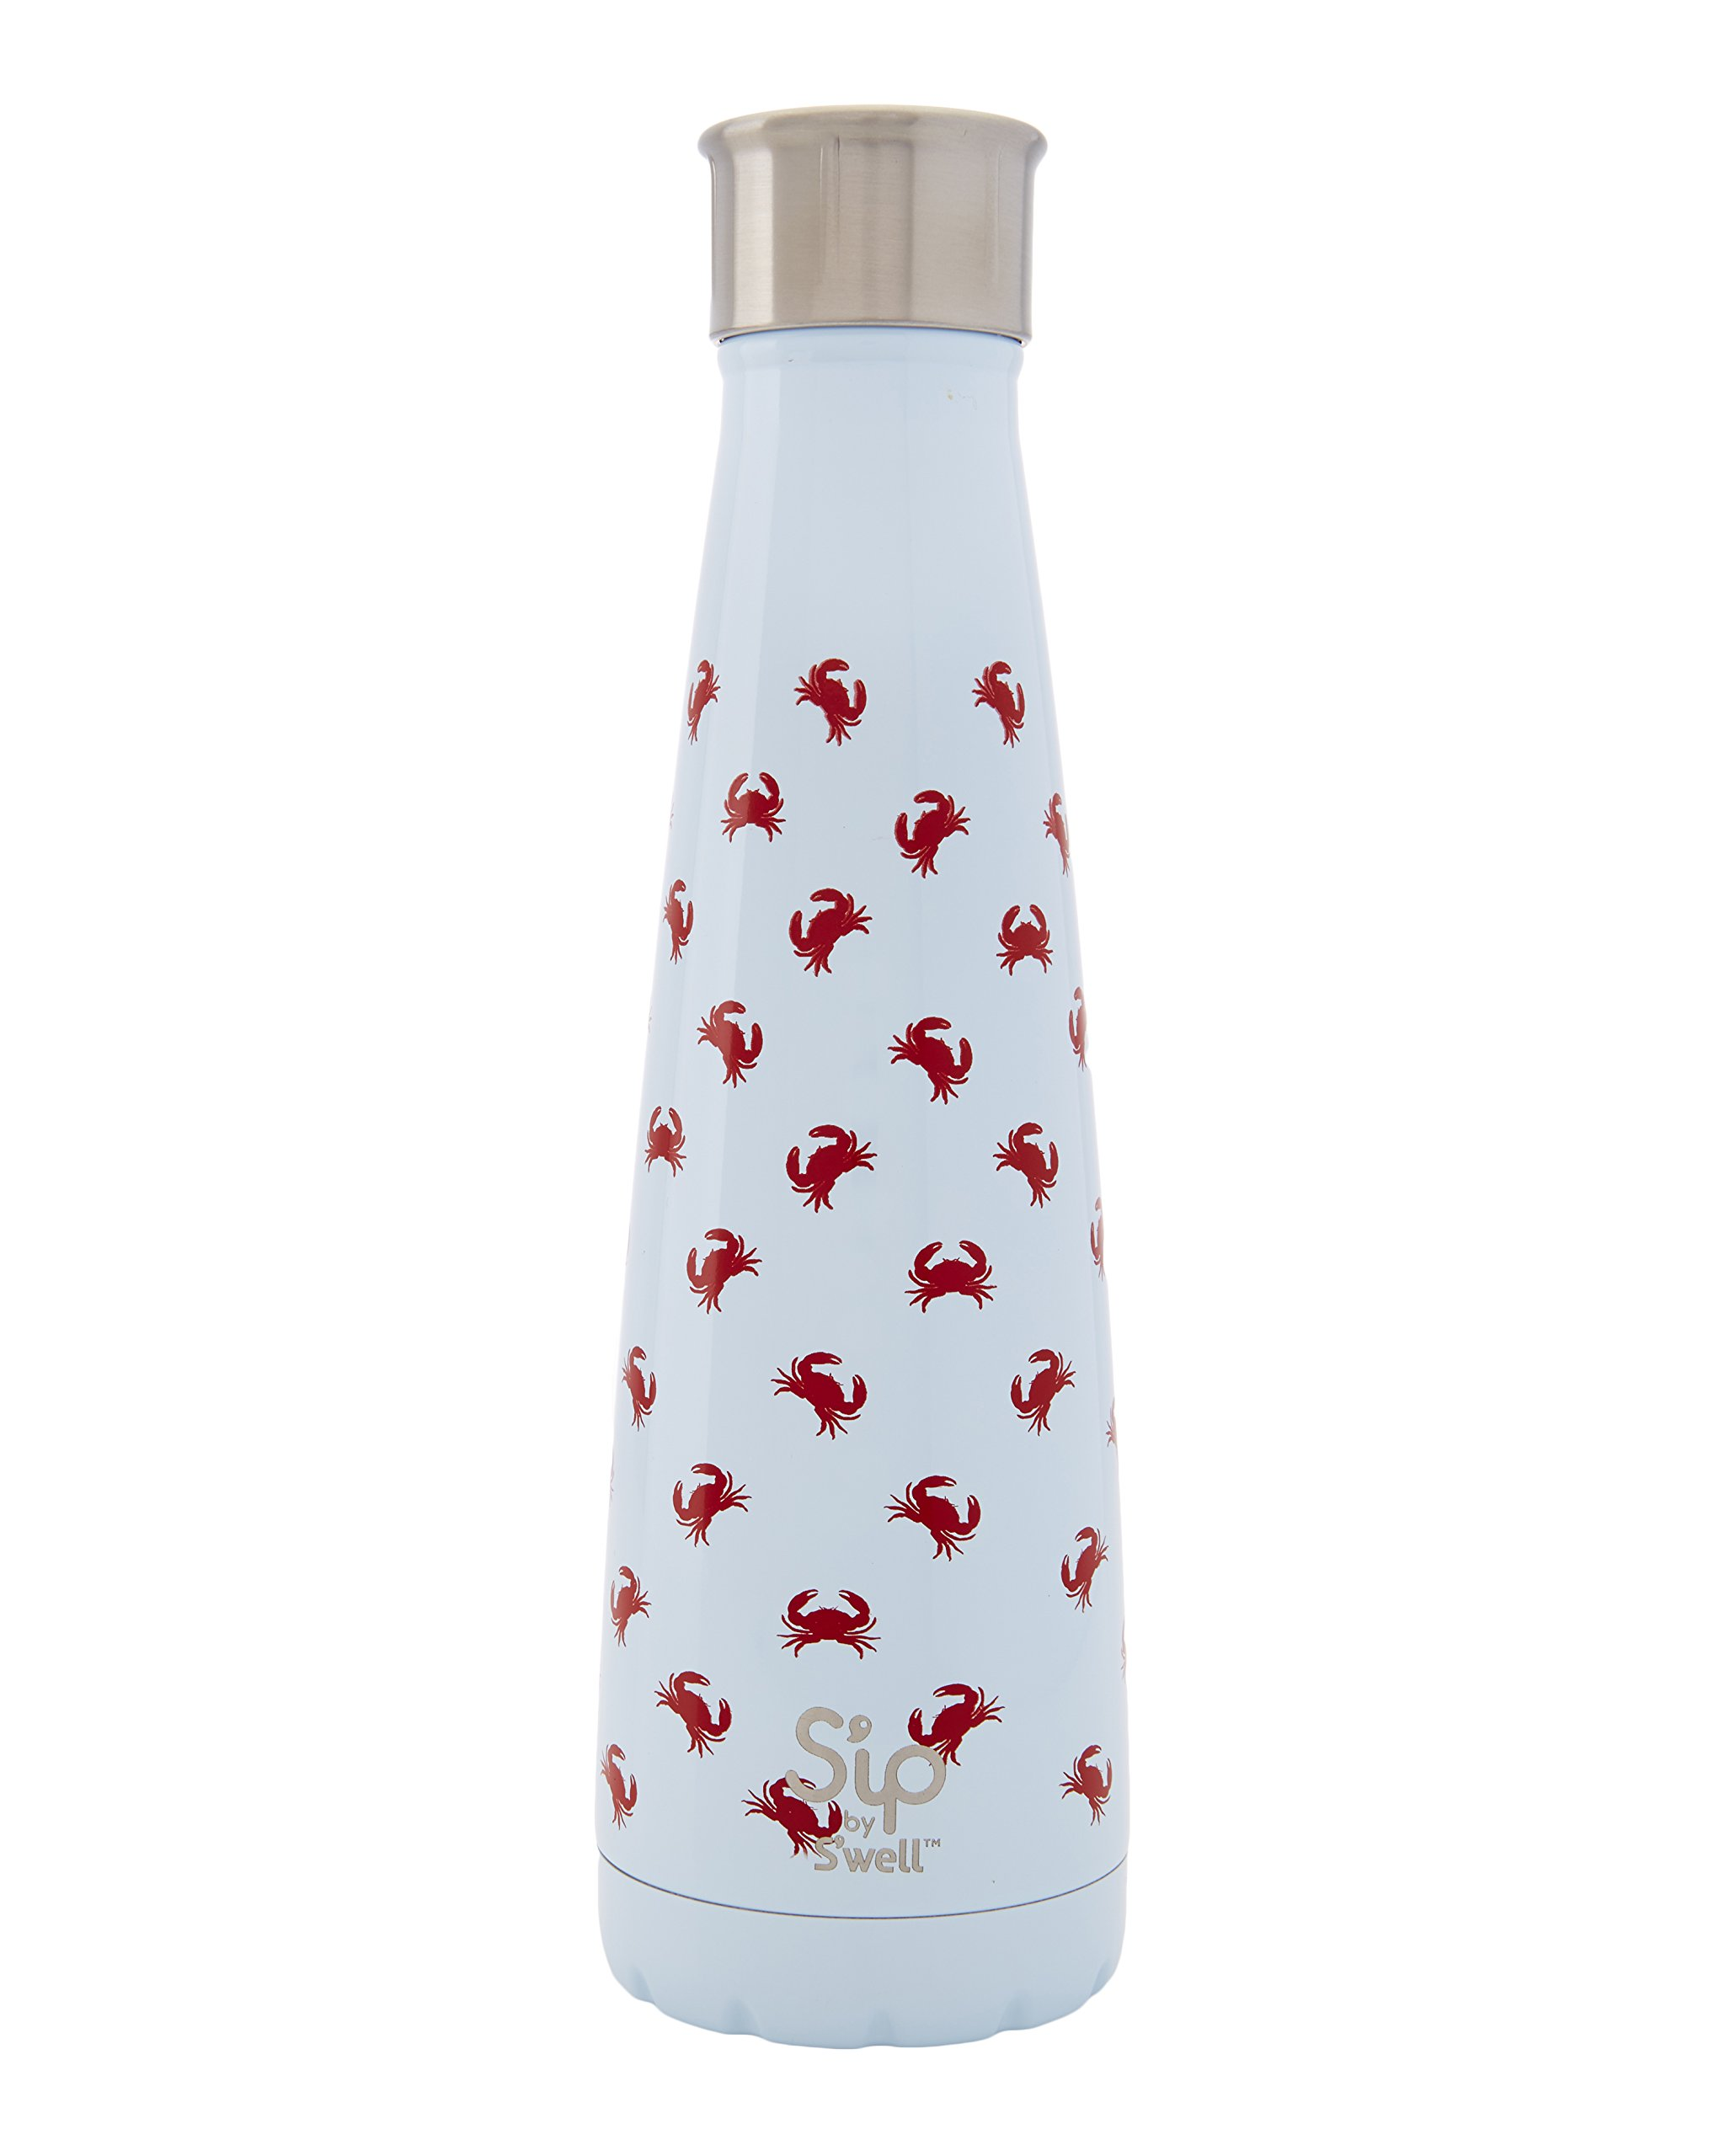 S'ip by S'well Vacuum Insulated Stainless Steel Water Bottle, Double Wall, 15 oz, Crab Walk